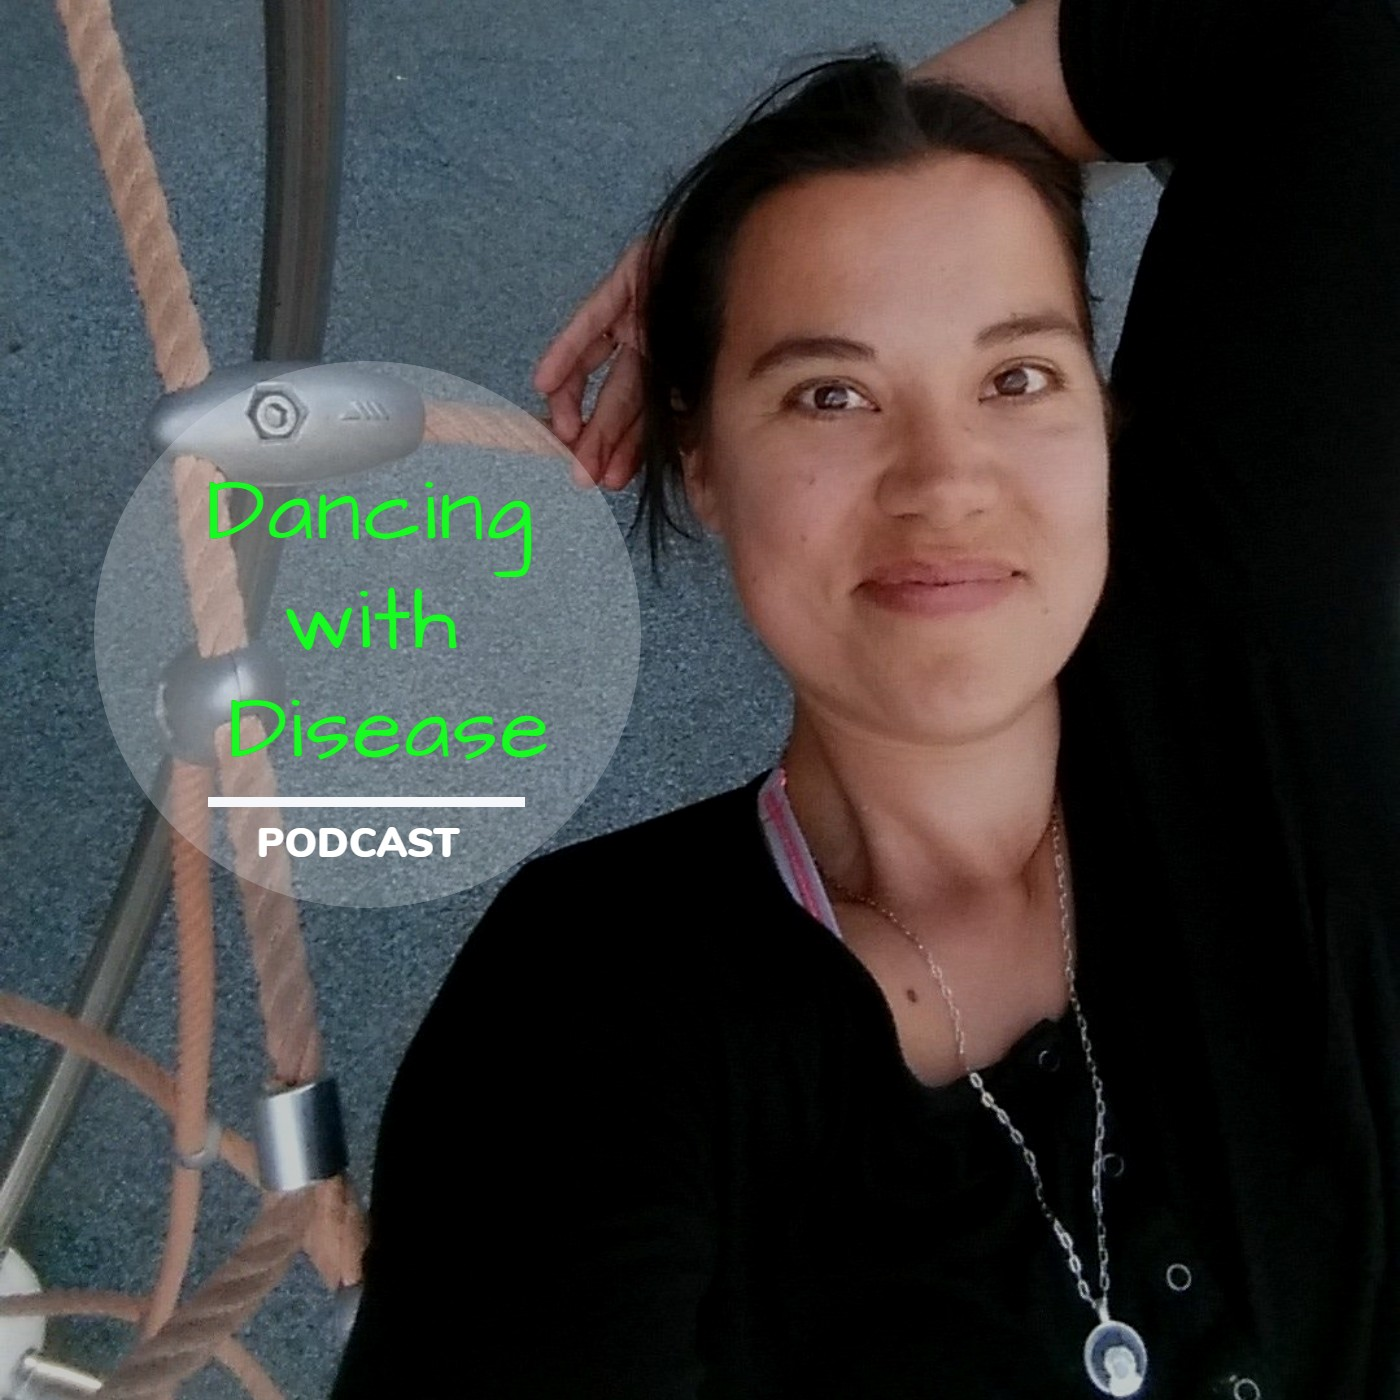 Episode 9: Stop Caring About Your Cellulite!